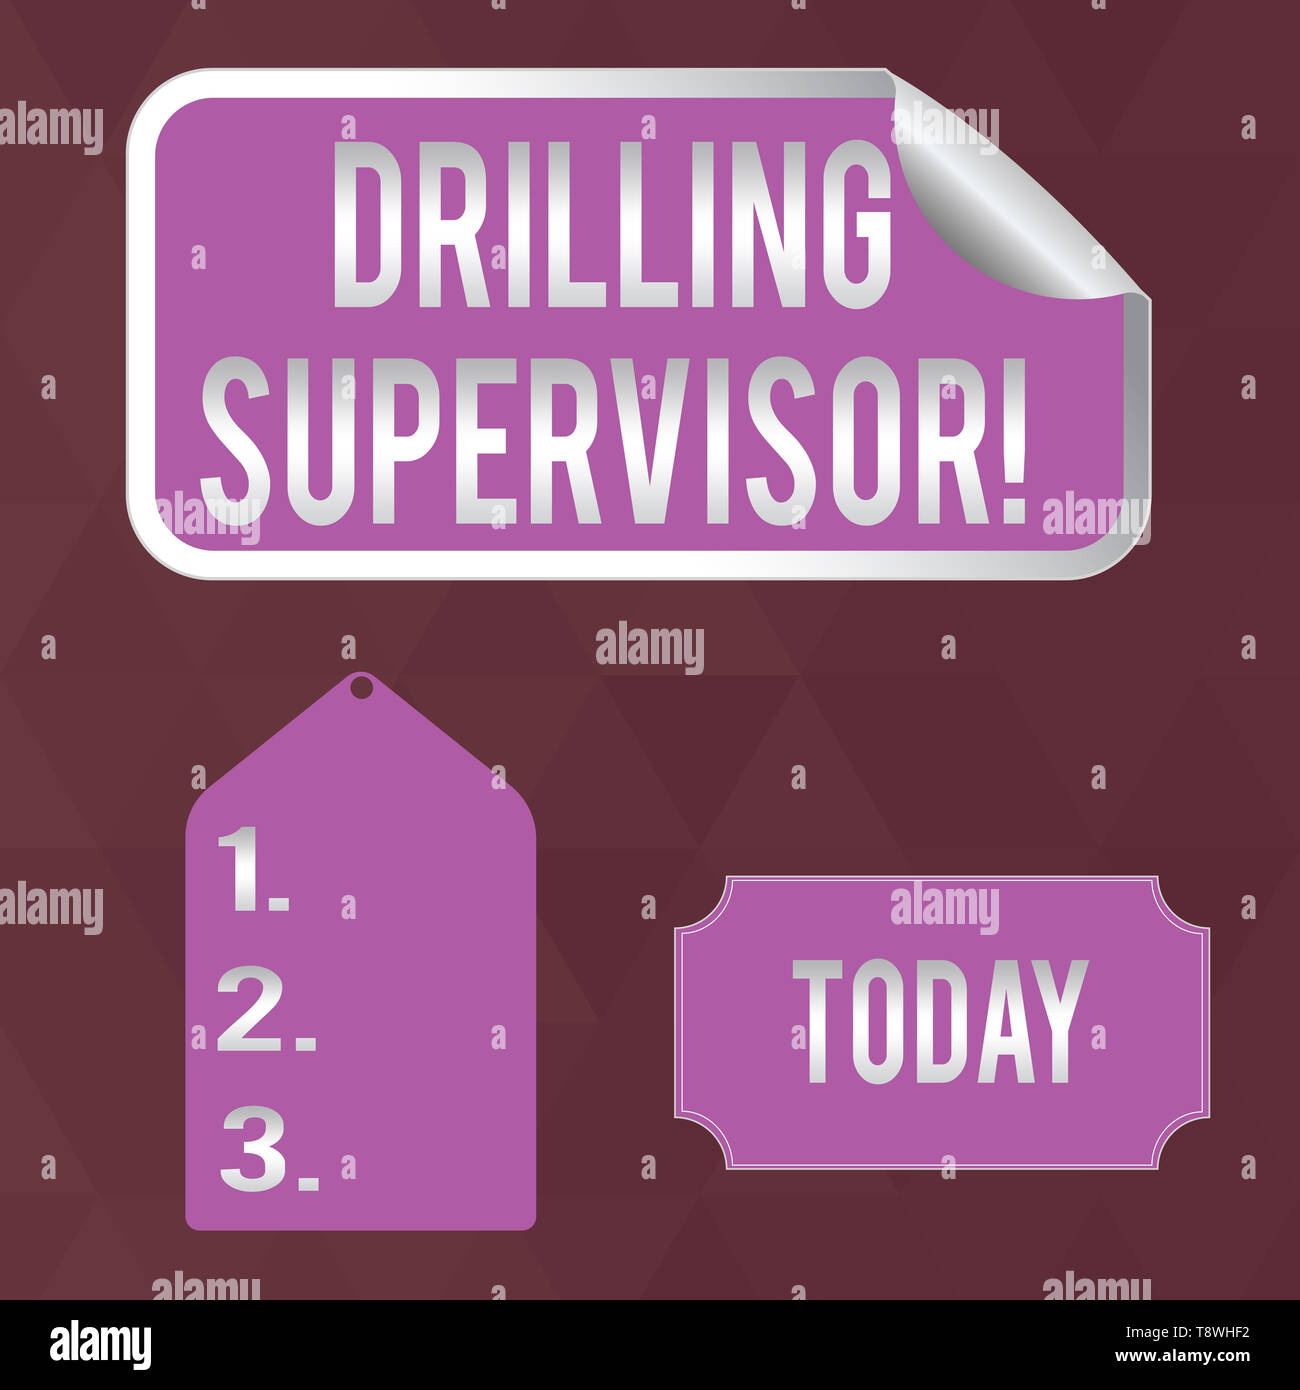 Self Drilling Stock Photos & Self Drilling Stock Images - Alamy